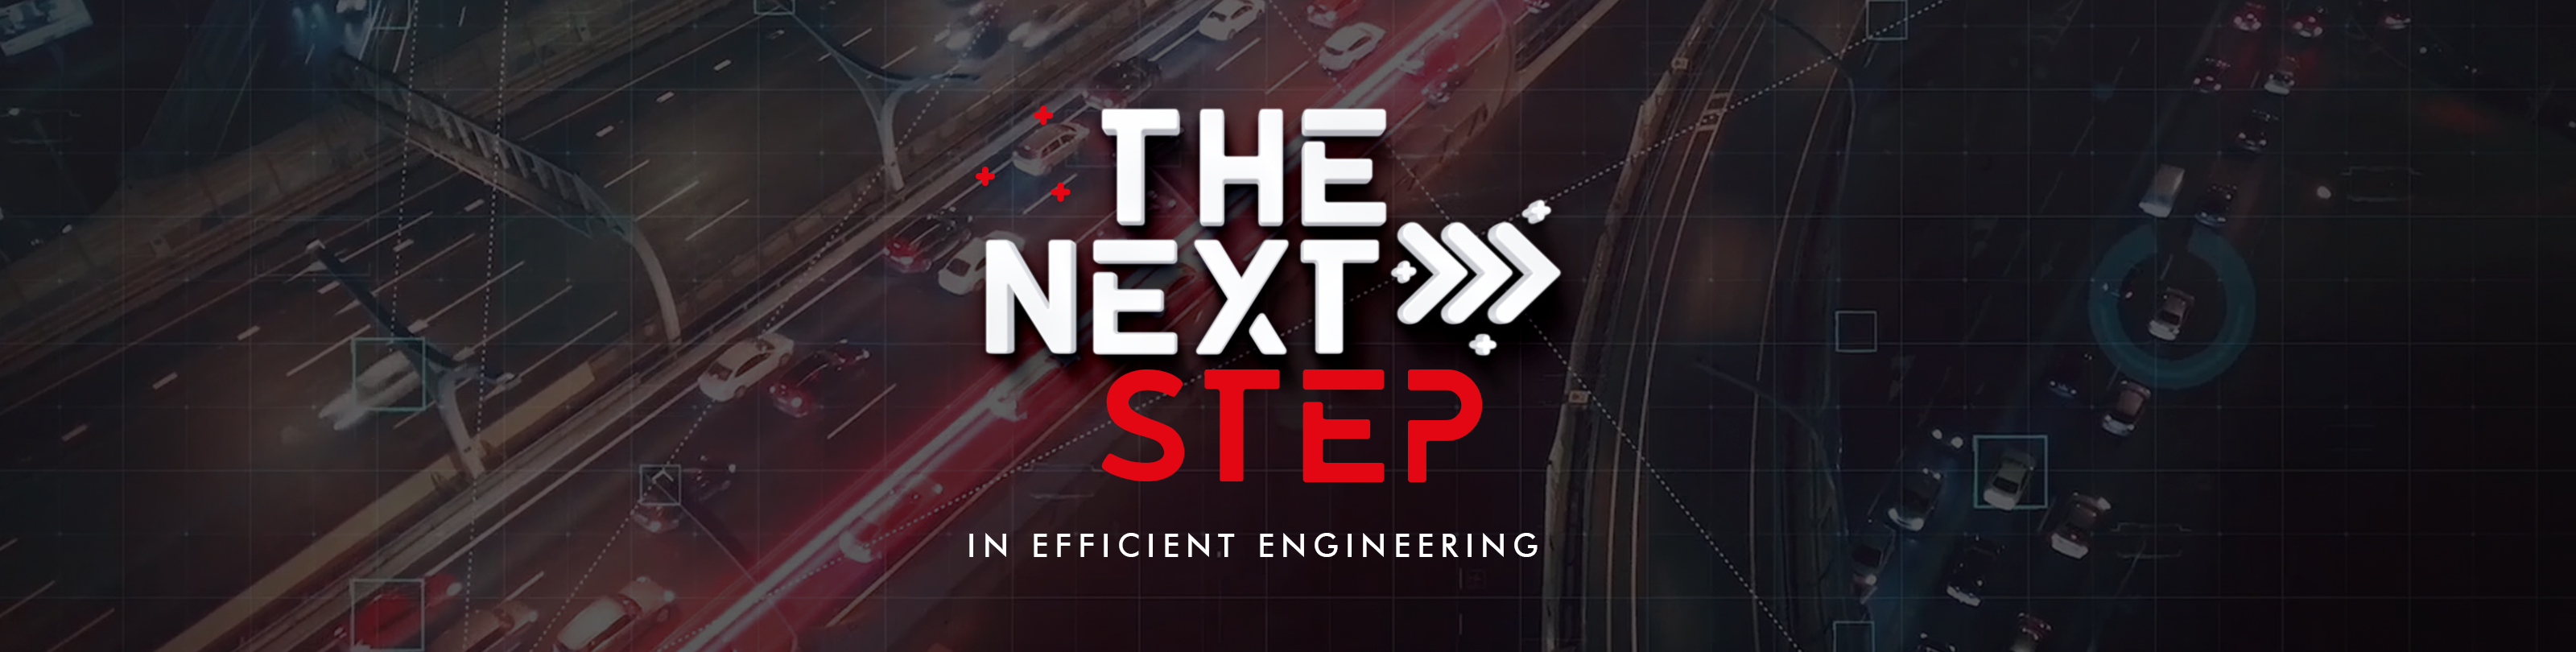 LP header_Lets EPLAN - The Next Step in Efficient Engineering